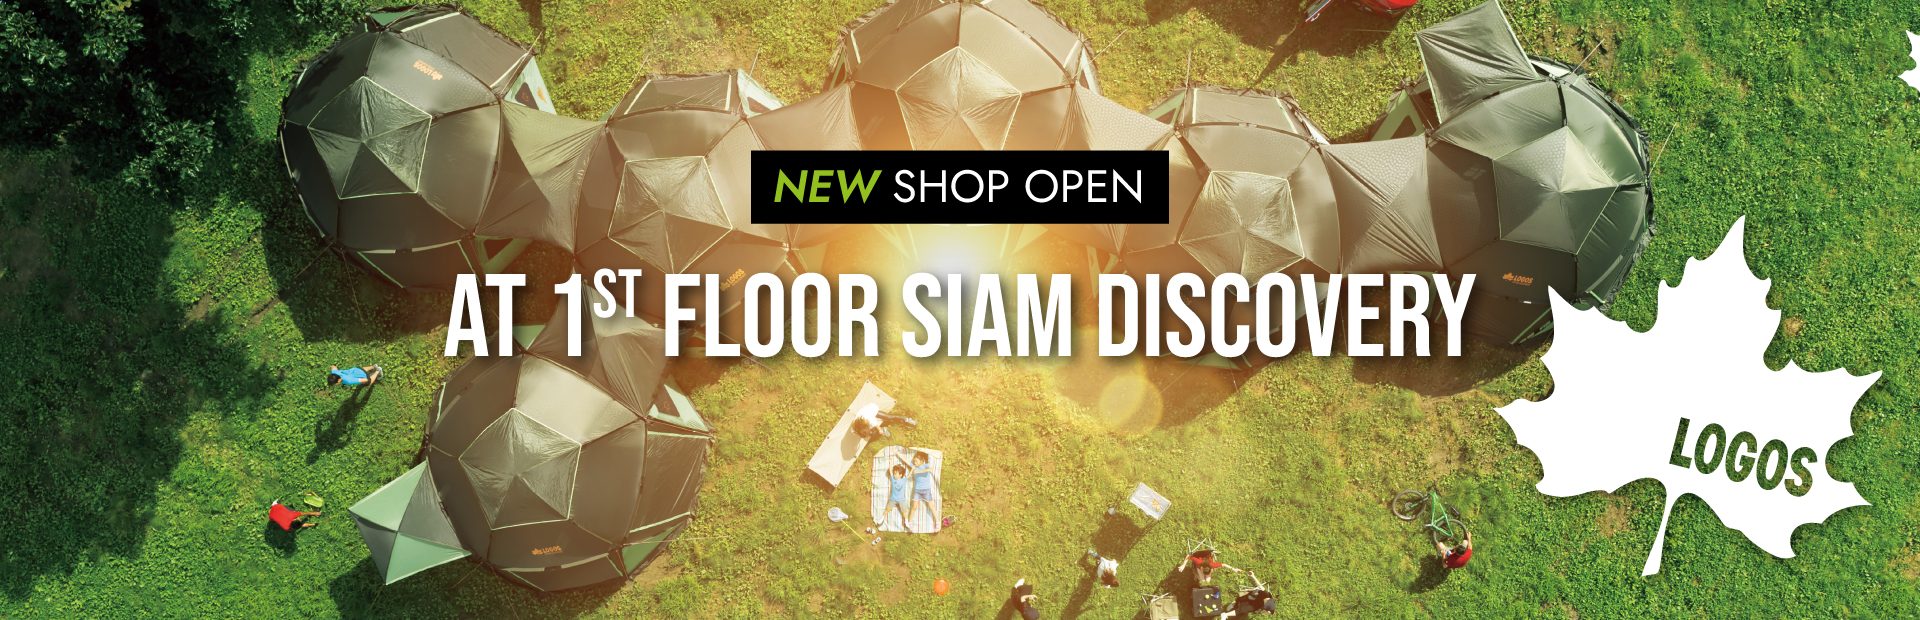 Siam-Discovery-banner2